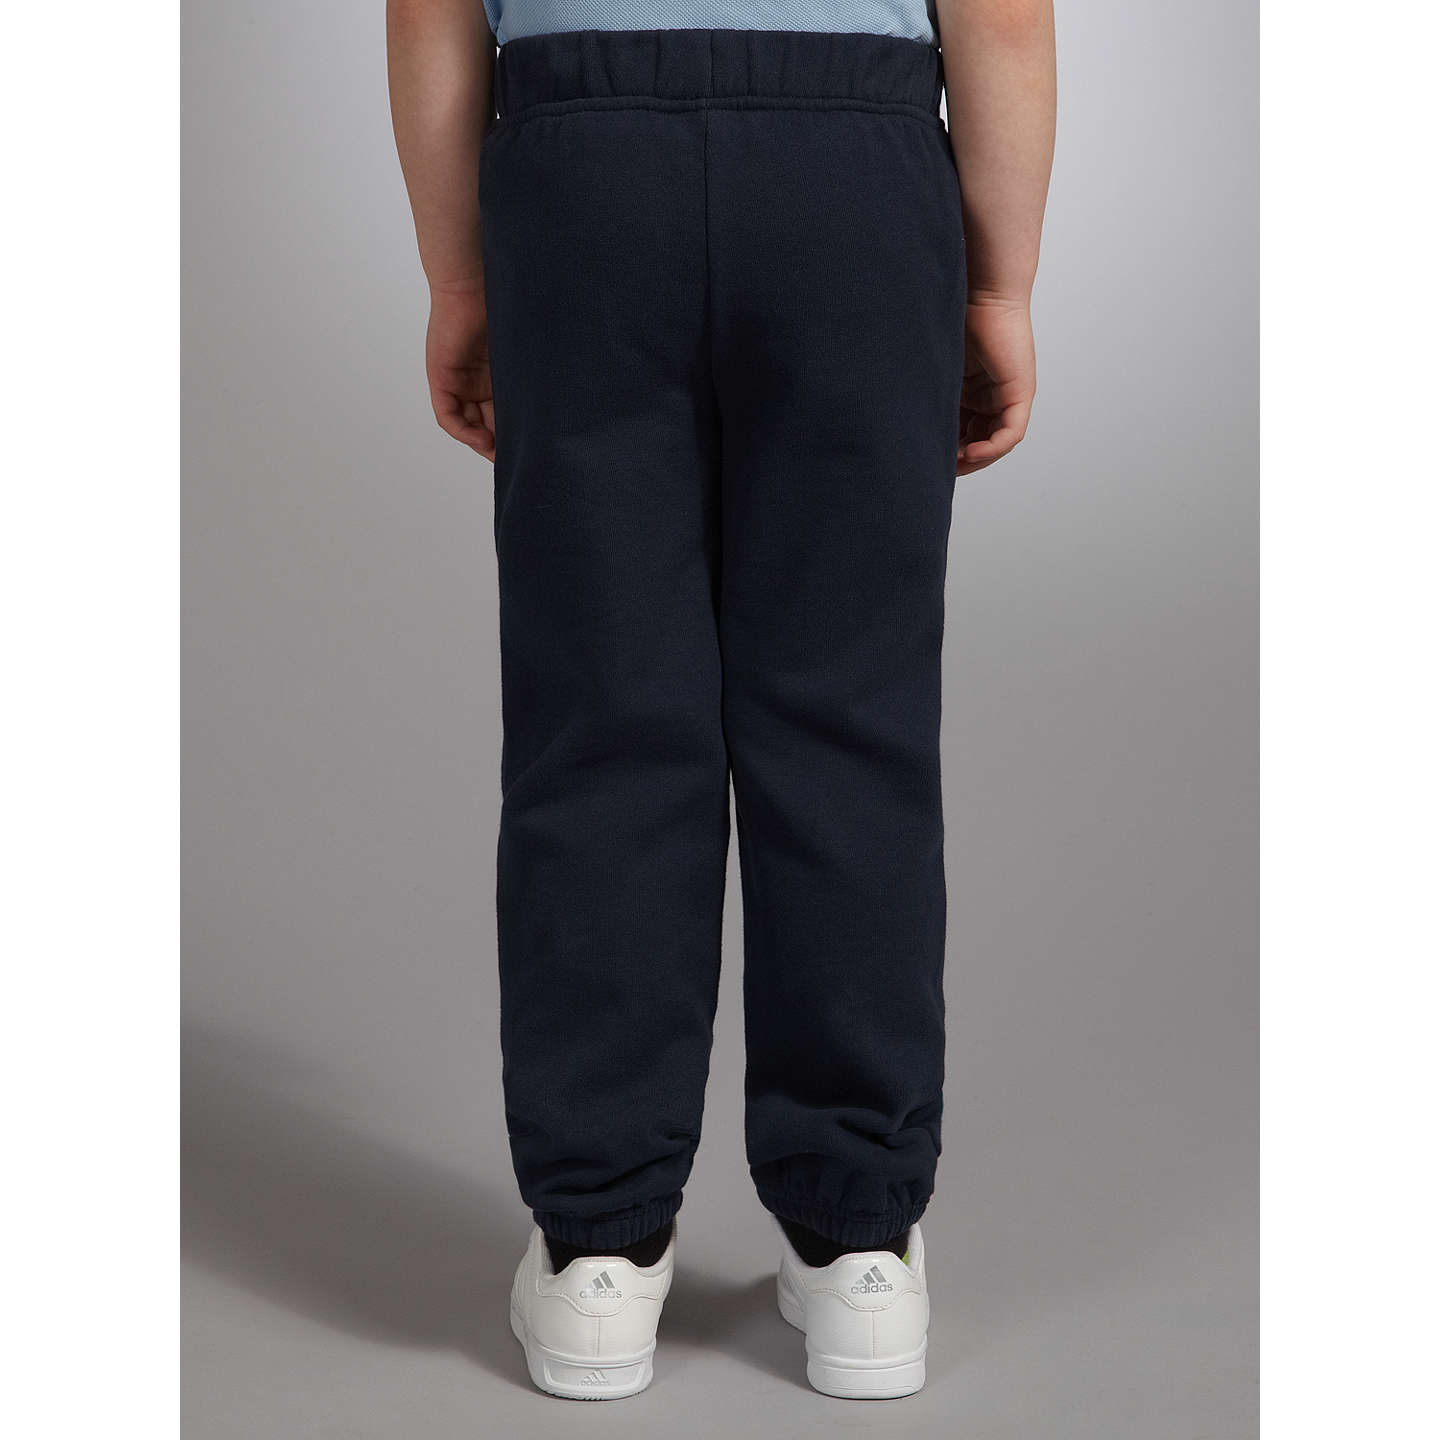 BuyJohn Lewis School Jogging Bottoms, Navy, 3-4 years Online at johnlewis.com